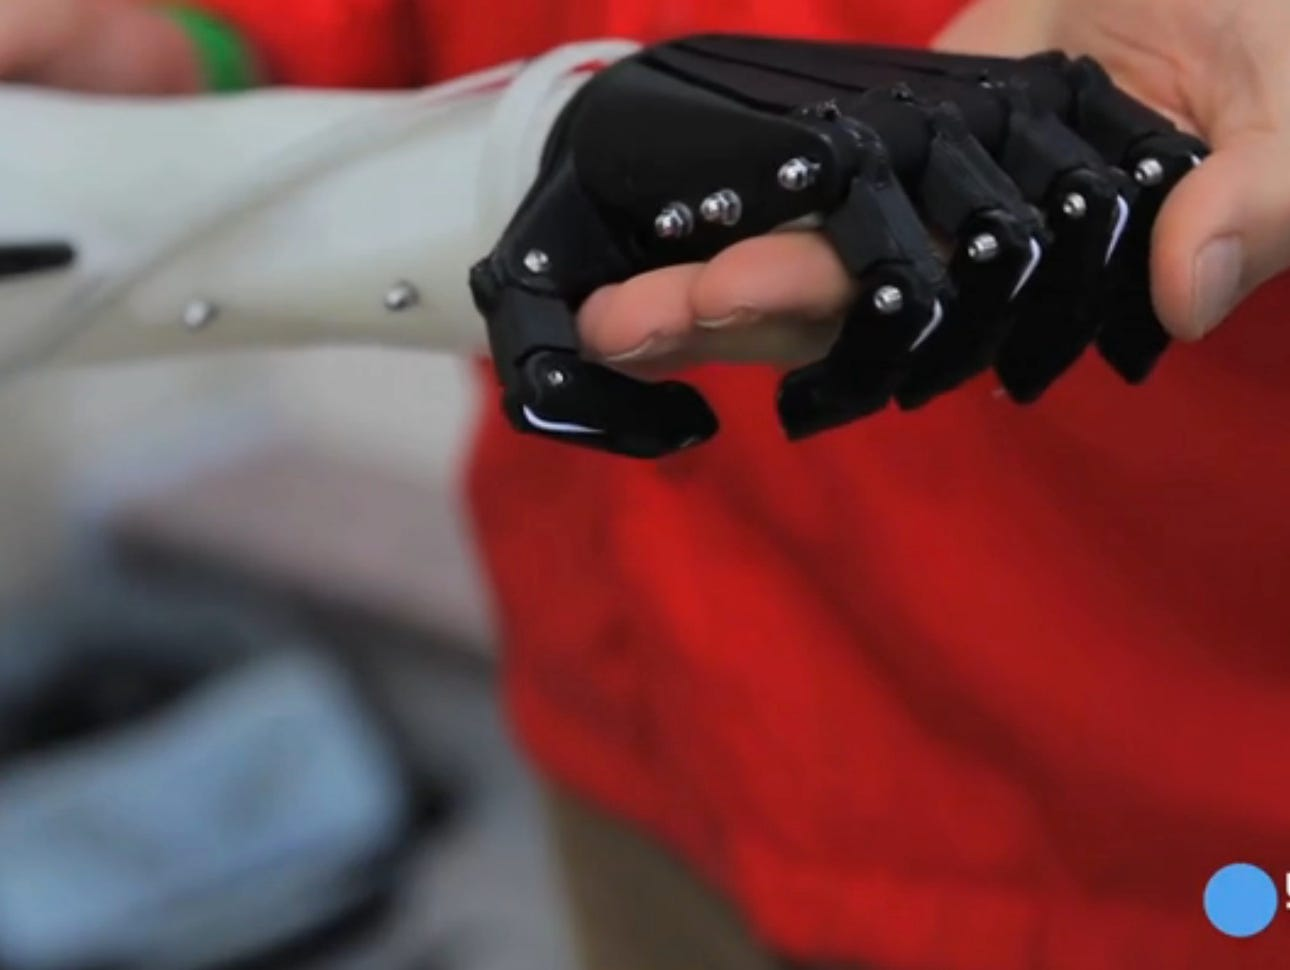 A copy of the prosthetic arm made with a 3D printer for $100 by nonprofit Not Impossible.